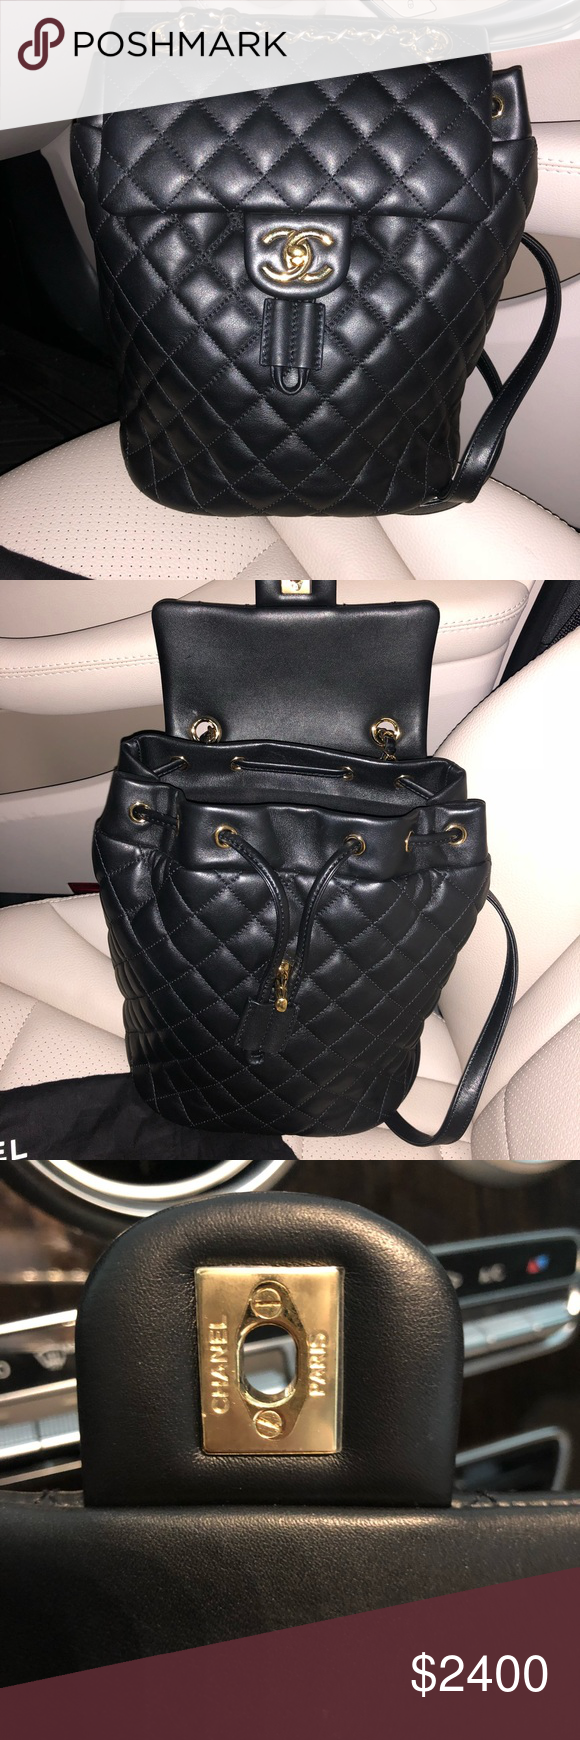 ae6b54bdf0cf Chanel Quilted Spirit Backpack Black Lambskin GHW Brand new Chanel Quilted Urban  Spirit Backpack in Black